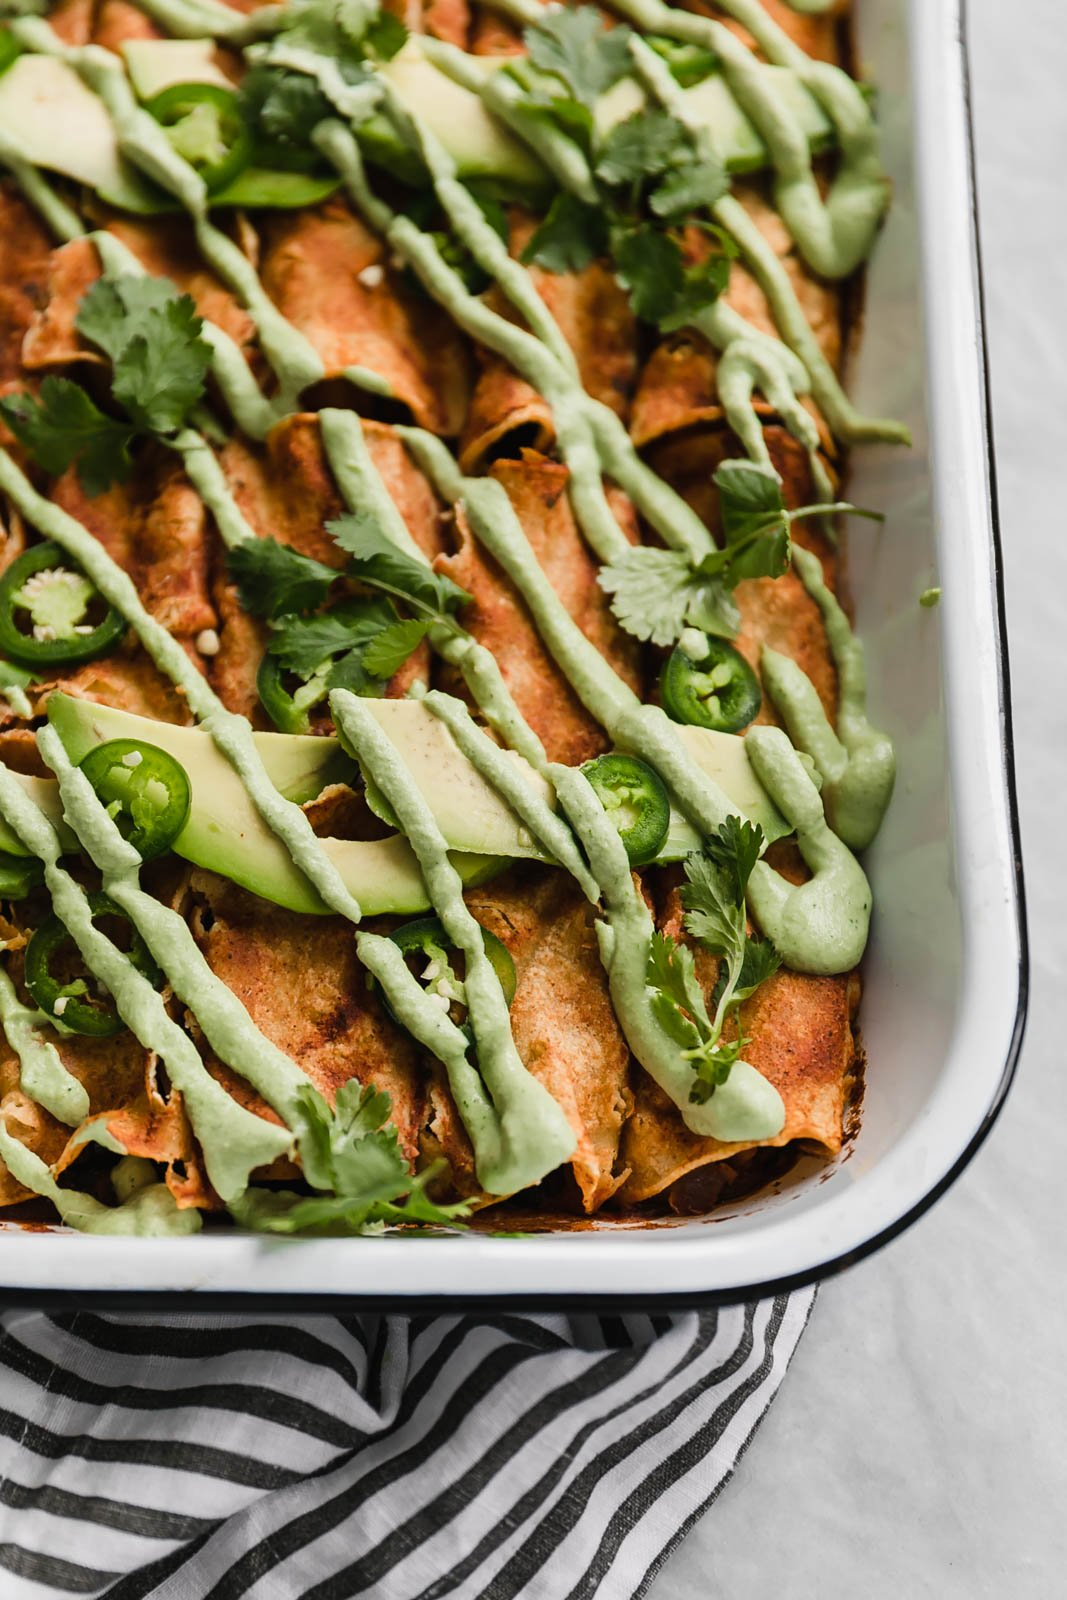 vegan enchiladas in a pan drizzled with jalapeño cashew crema